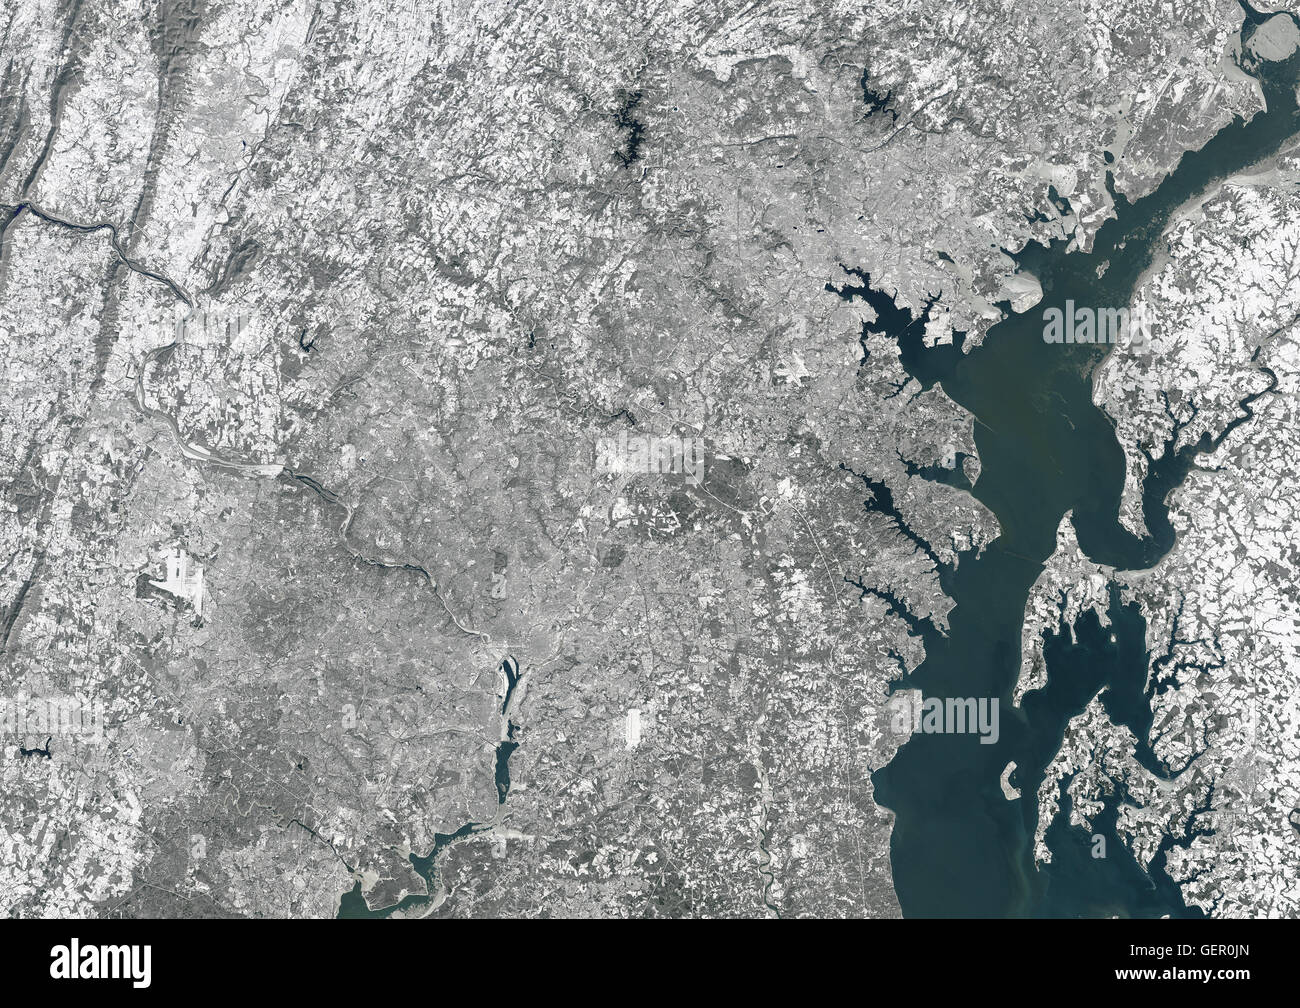 Satellite View Of Washington Dc And Baltimore Covered With Snow Usa This Image Was Taken On 24 January 2016 By Landsat 8 Satellite